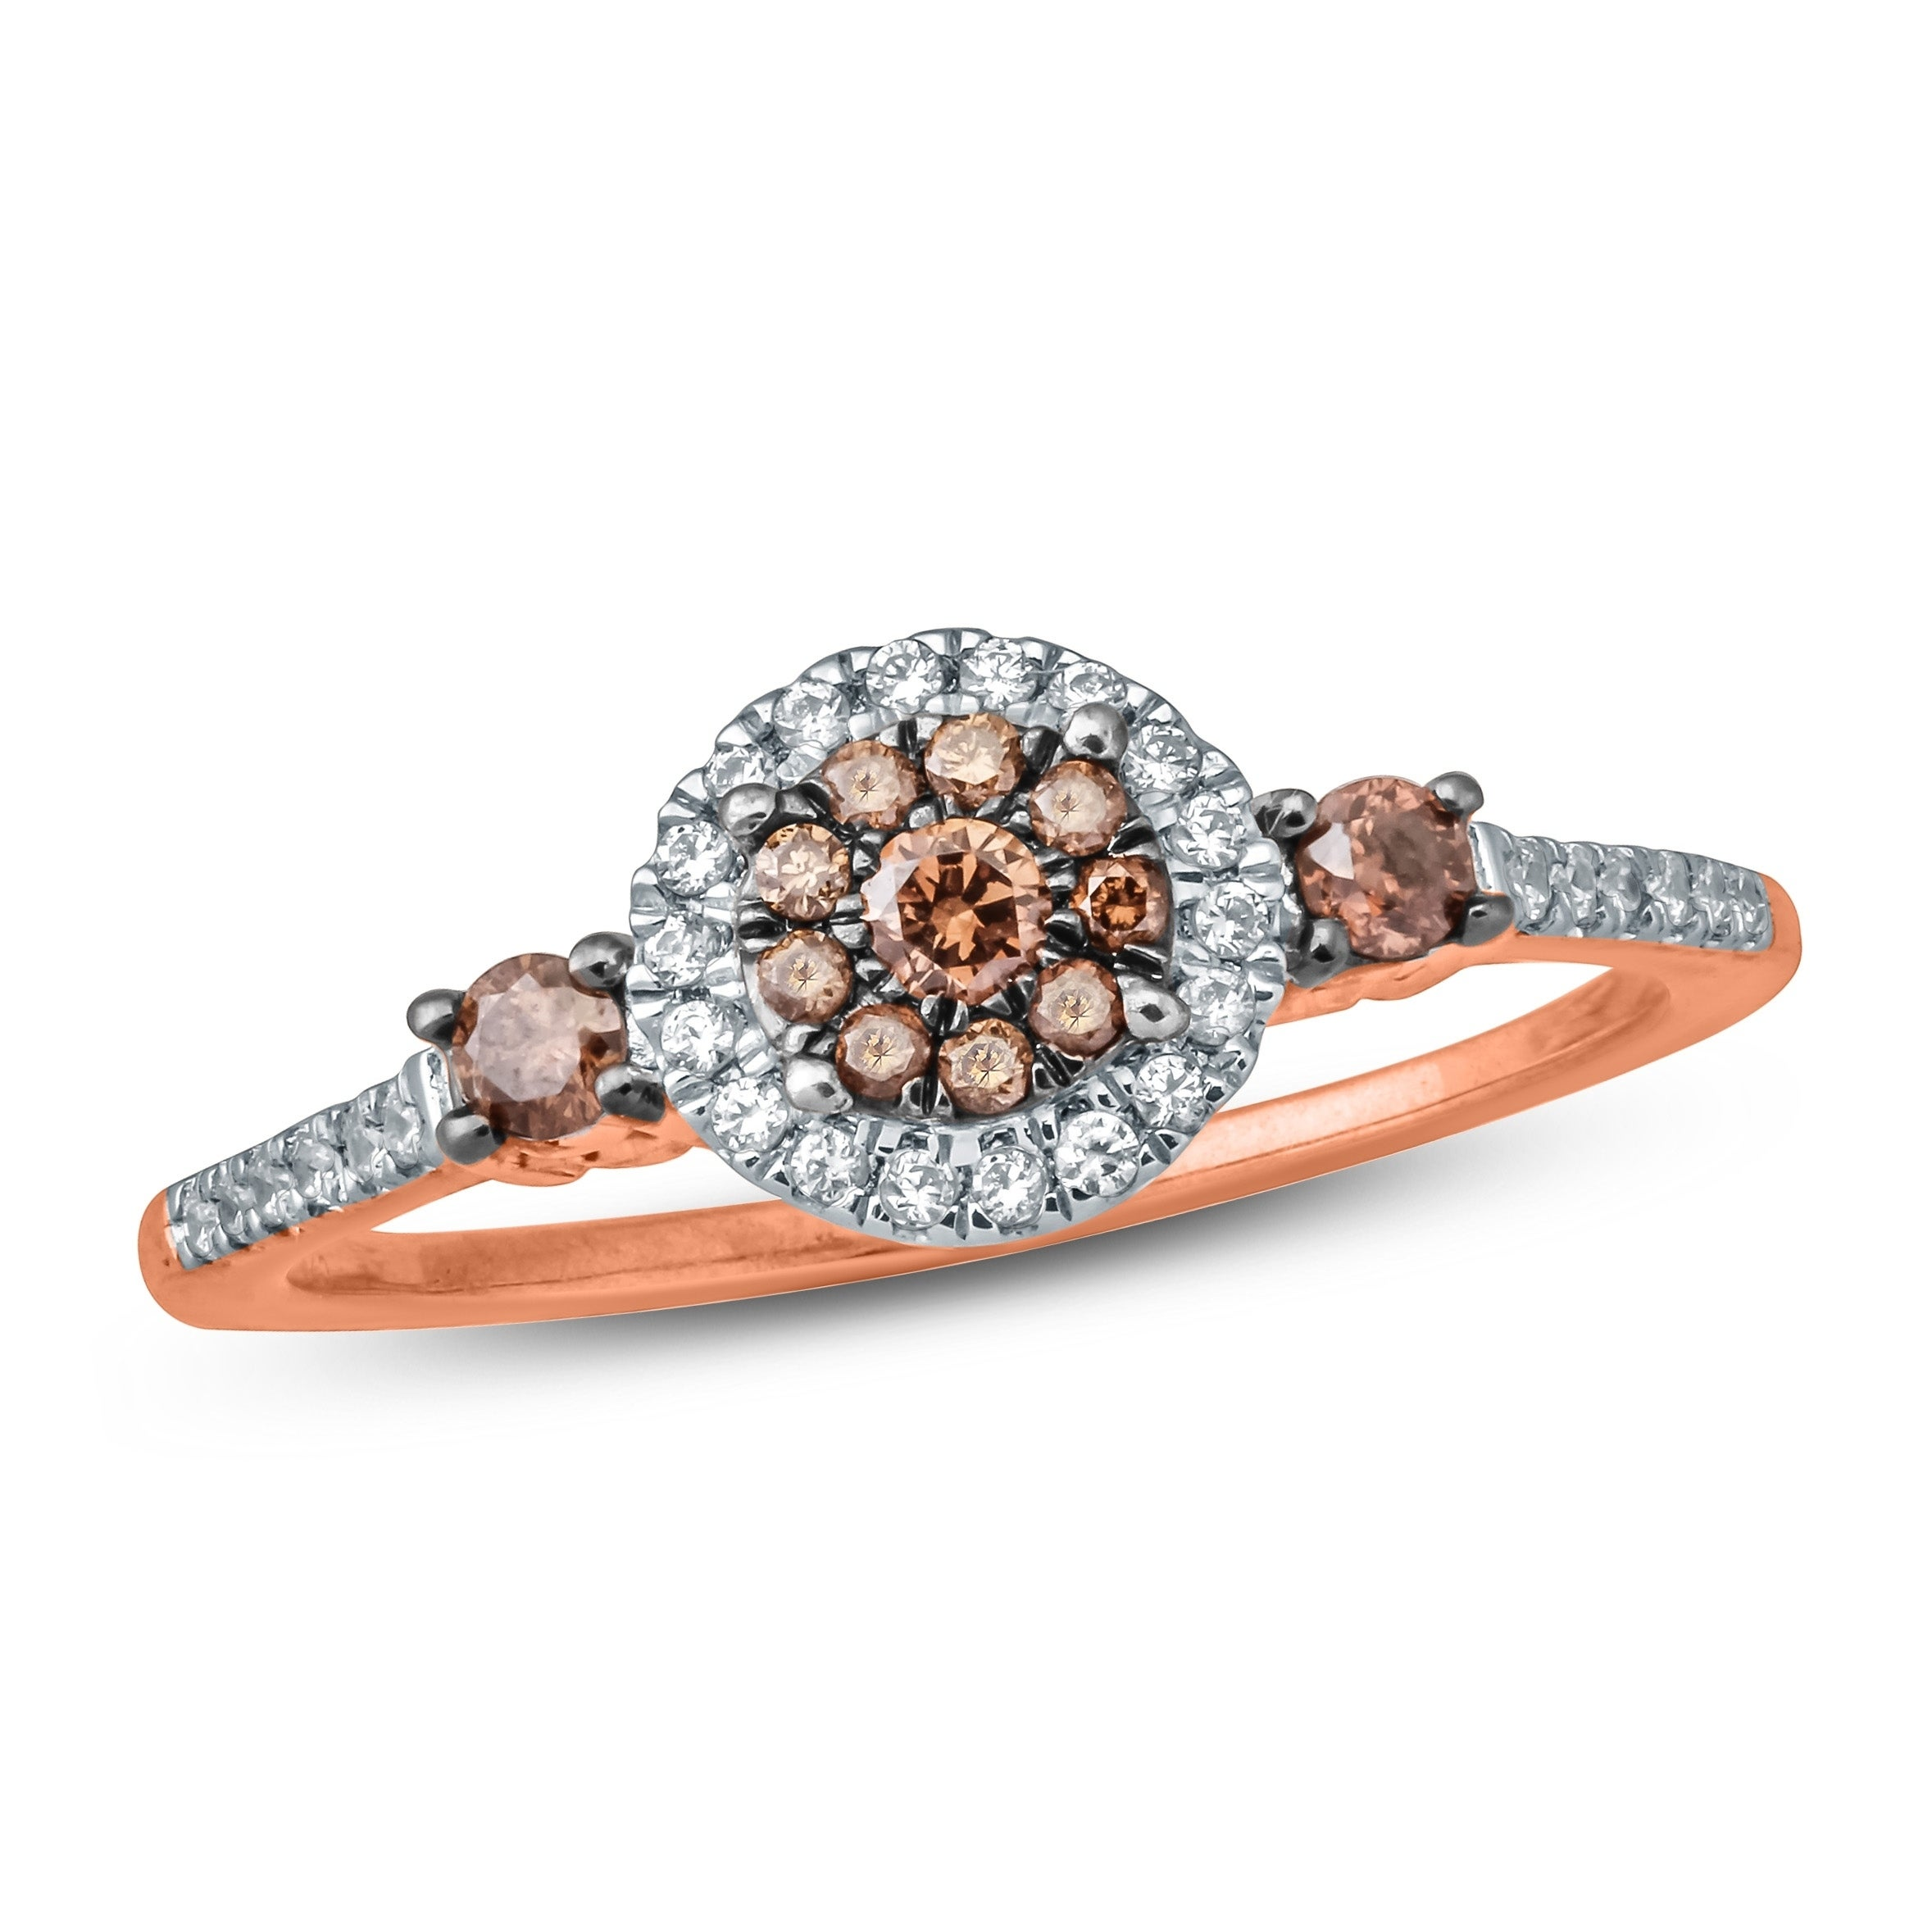 champagne designs jennie journey products diamond fullsizerender kwon ring